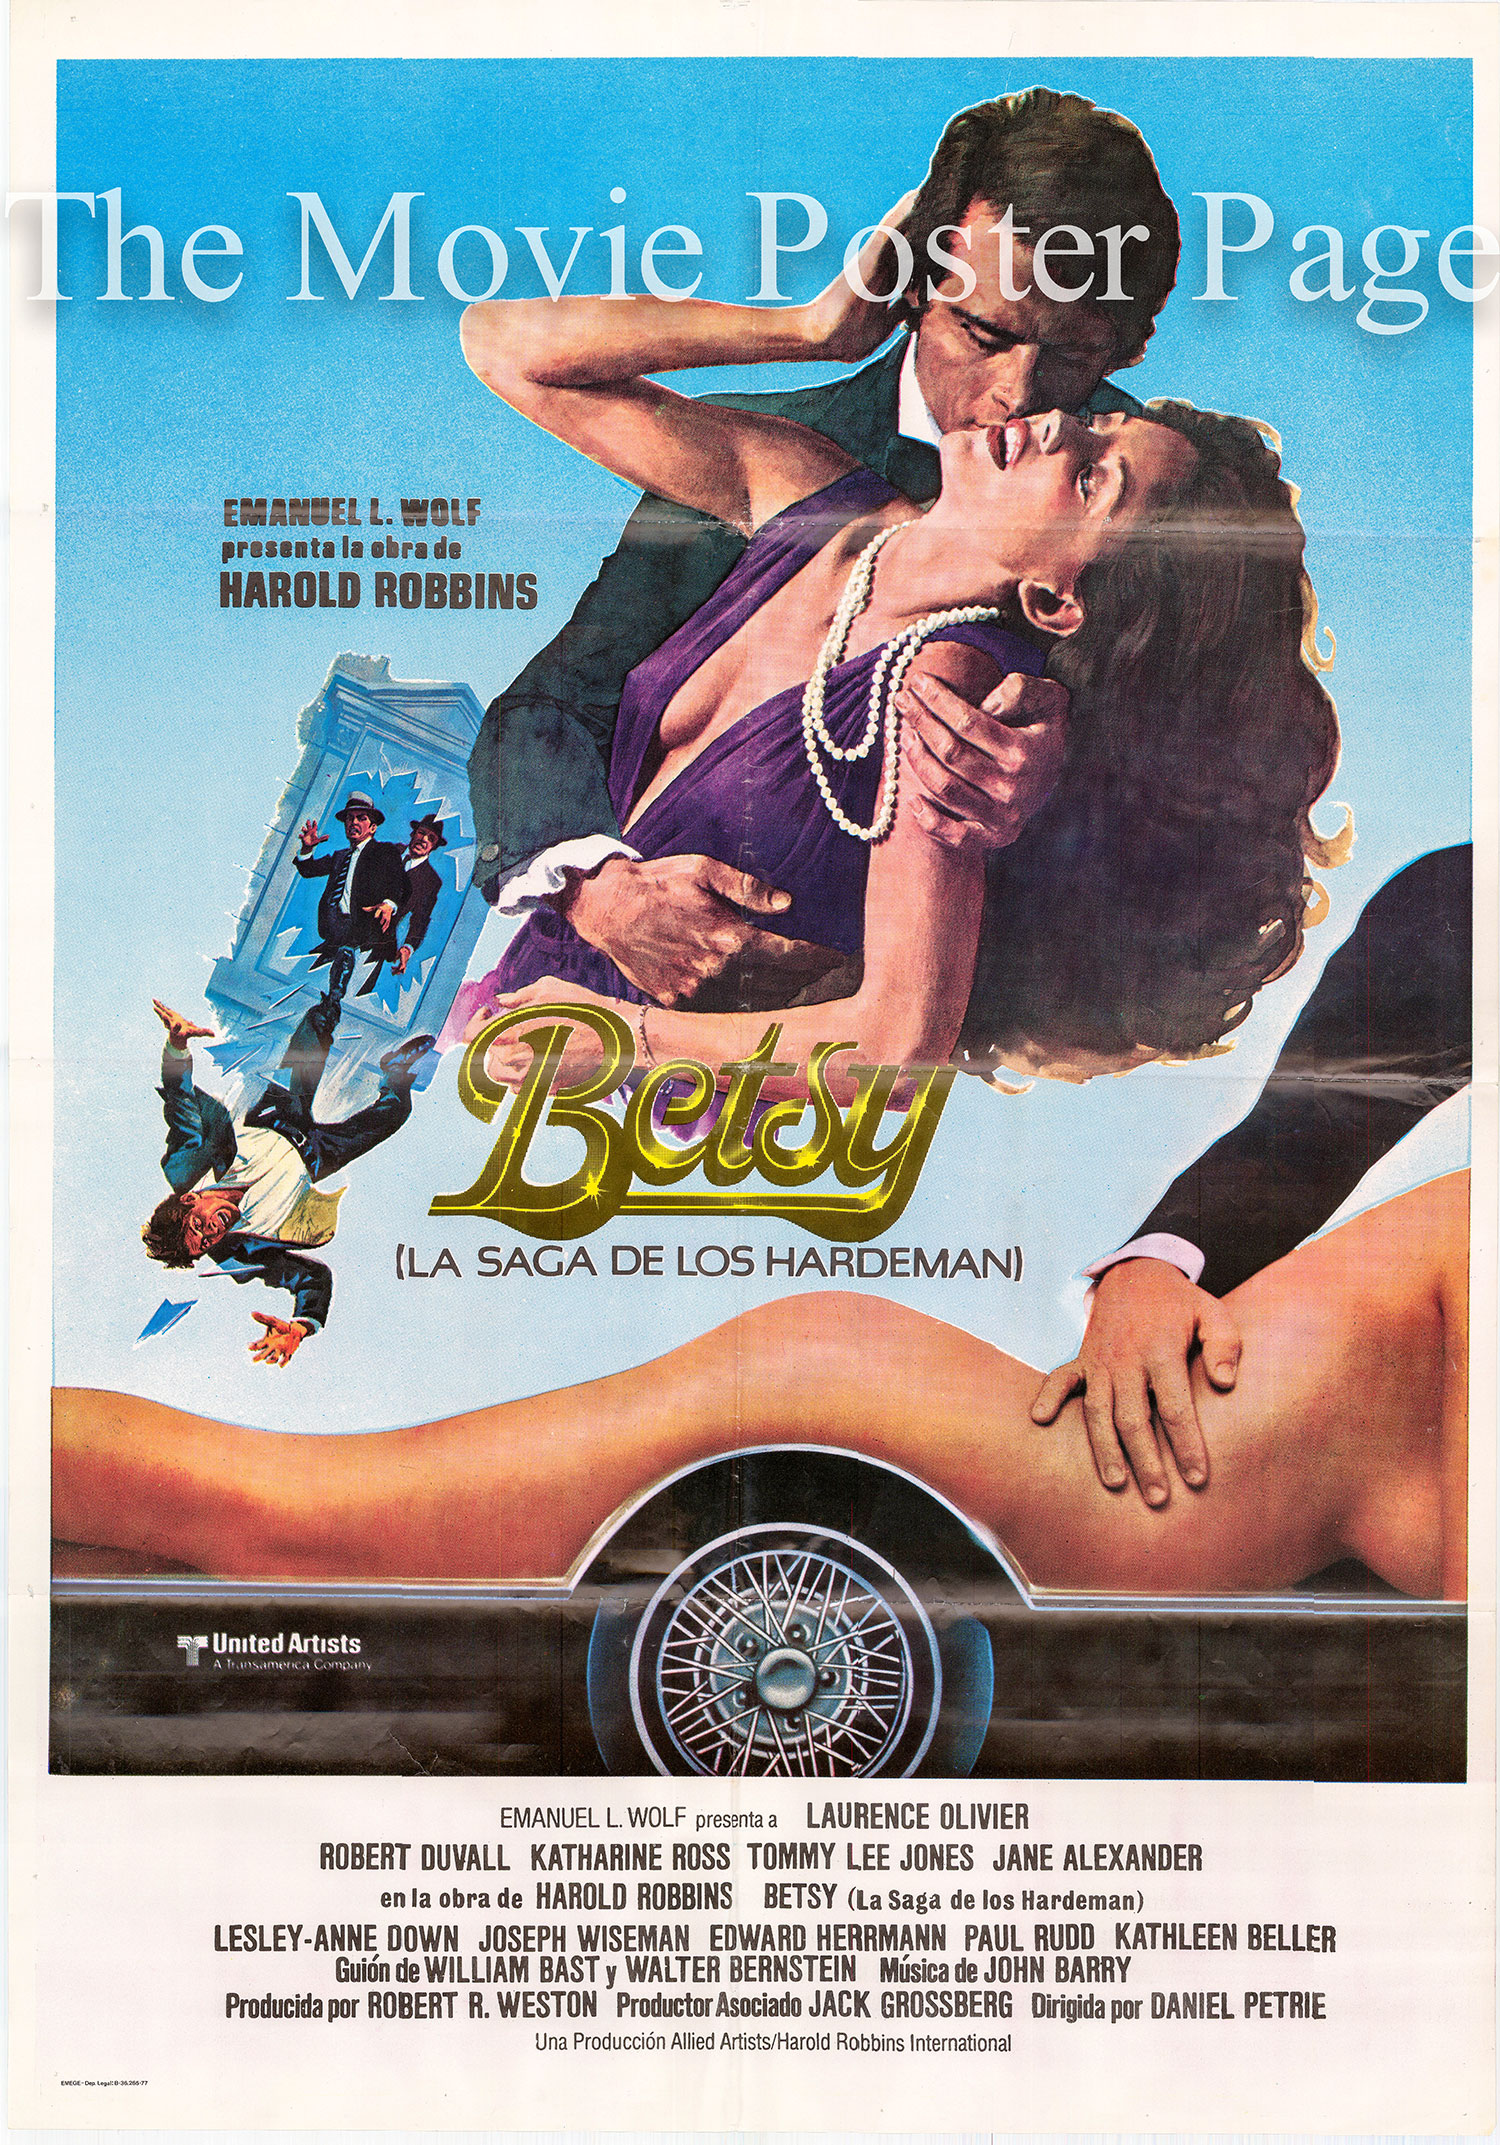 Pictured is a Spanish promotional poster for the 1978 Daniel Petrie film the Betsy starring Laurence Olivier.